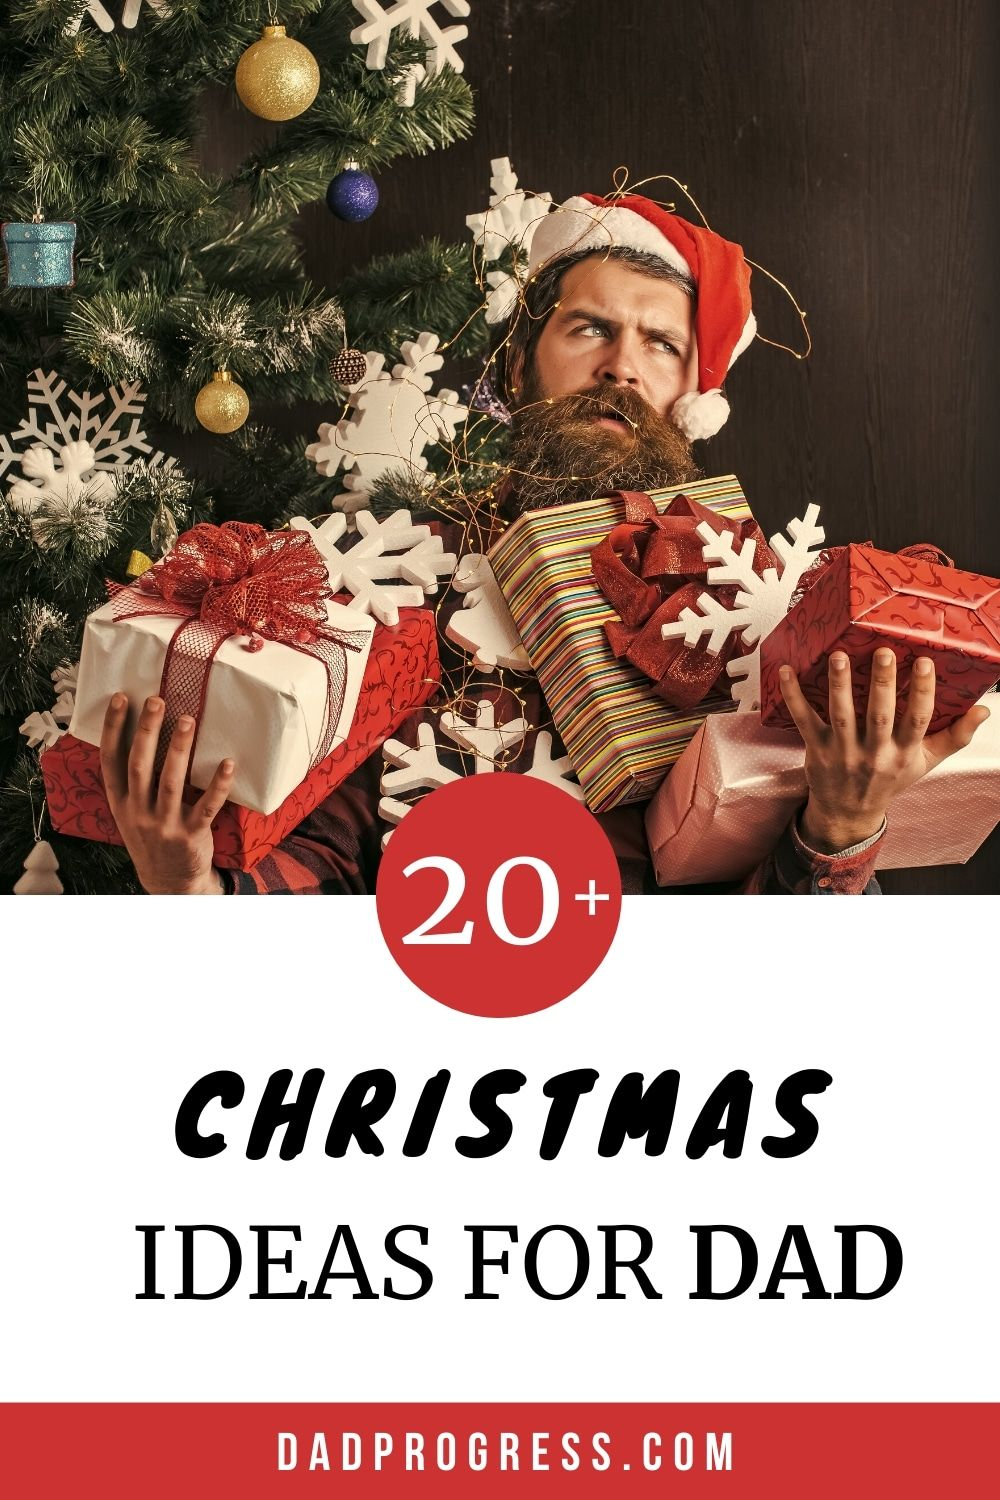 Best Christmas Gifts For Dad 2021 List Of Best Christmas Gifts For Dad In 2021 Christmas Gift For Dad Christmas Gifts For Couples Big Christmas Gifts